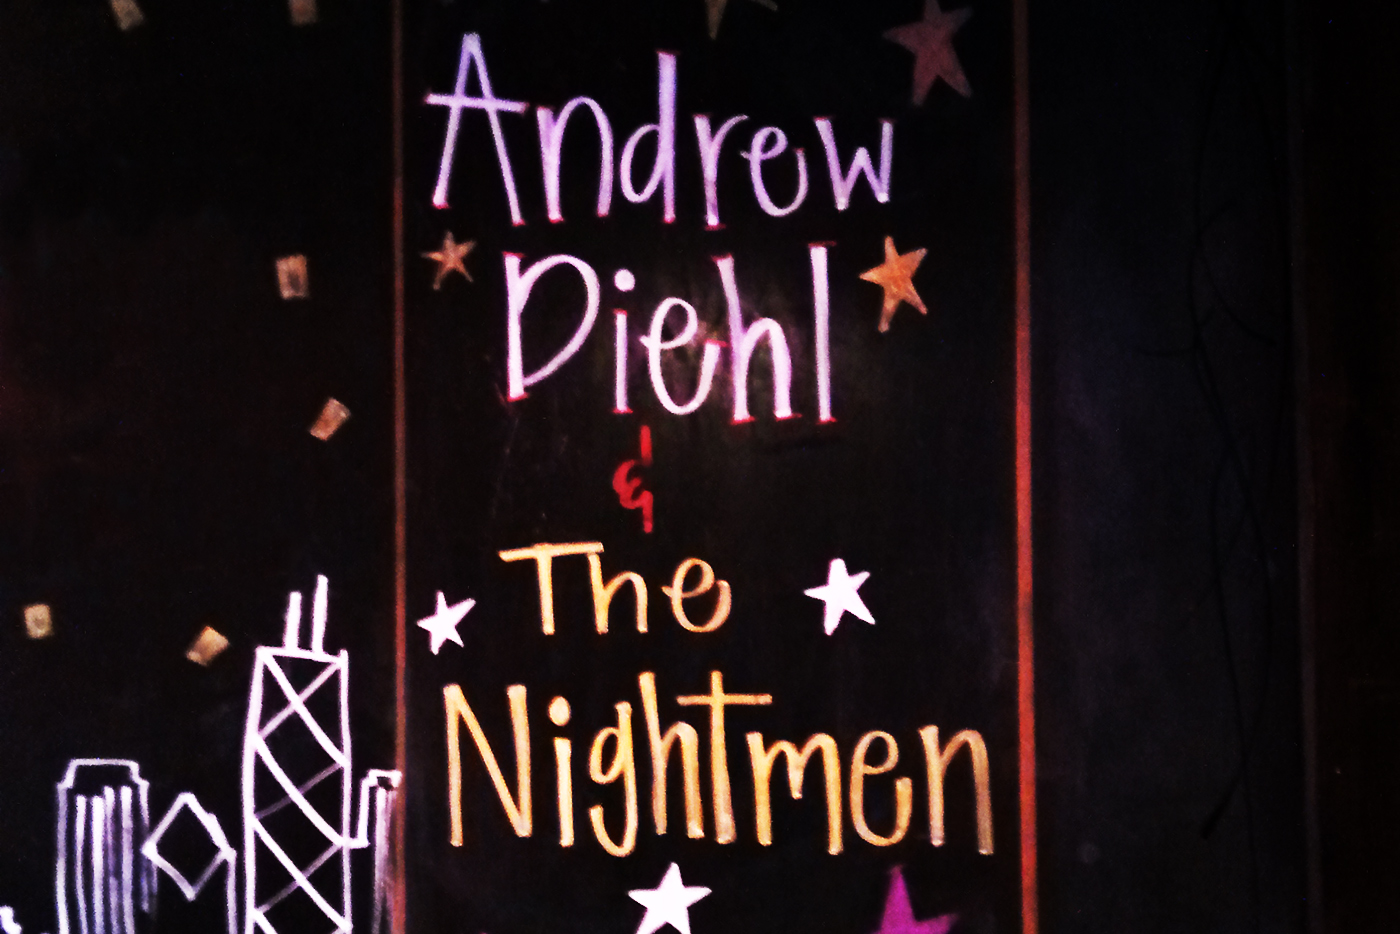 Andrew Diehl & The Nightmen